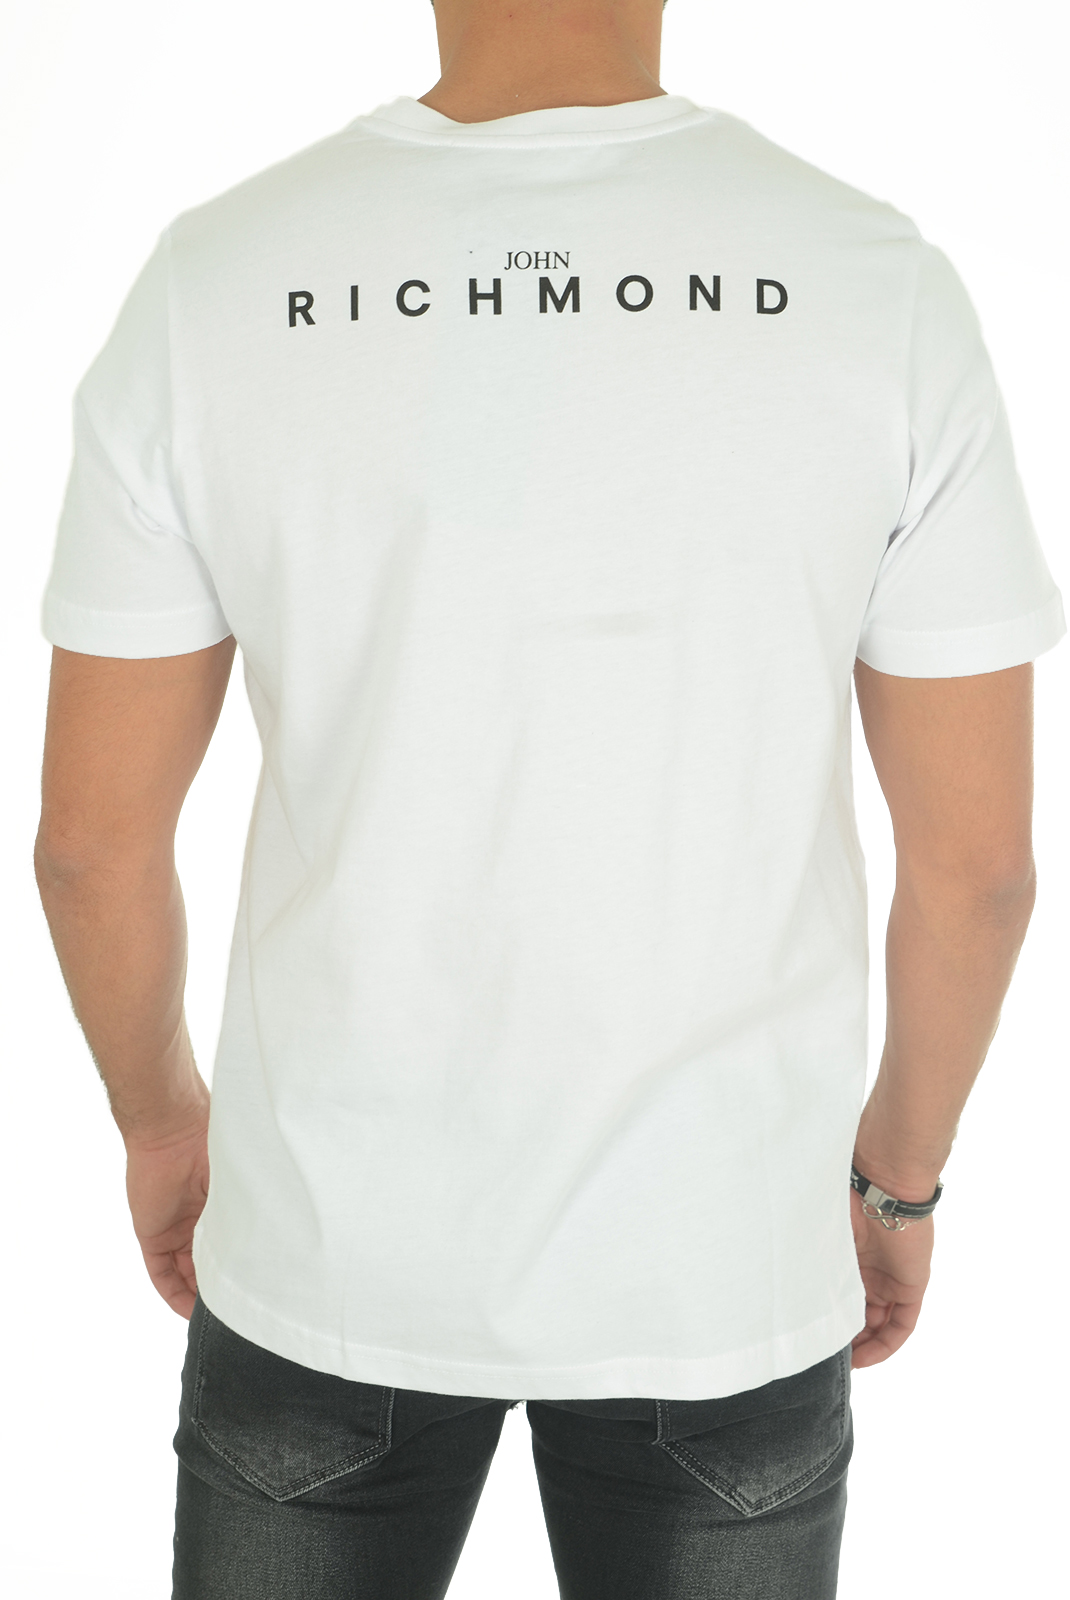 Tee-shirts  John richmond MATRINCA W0019 BLANC